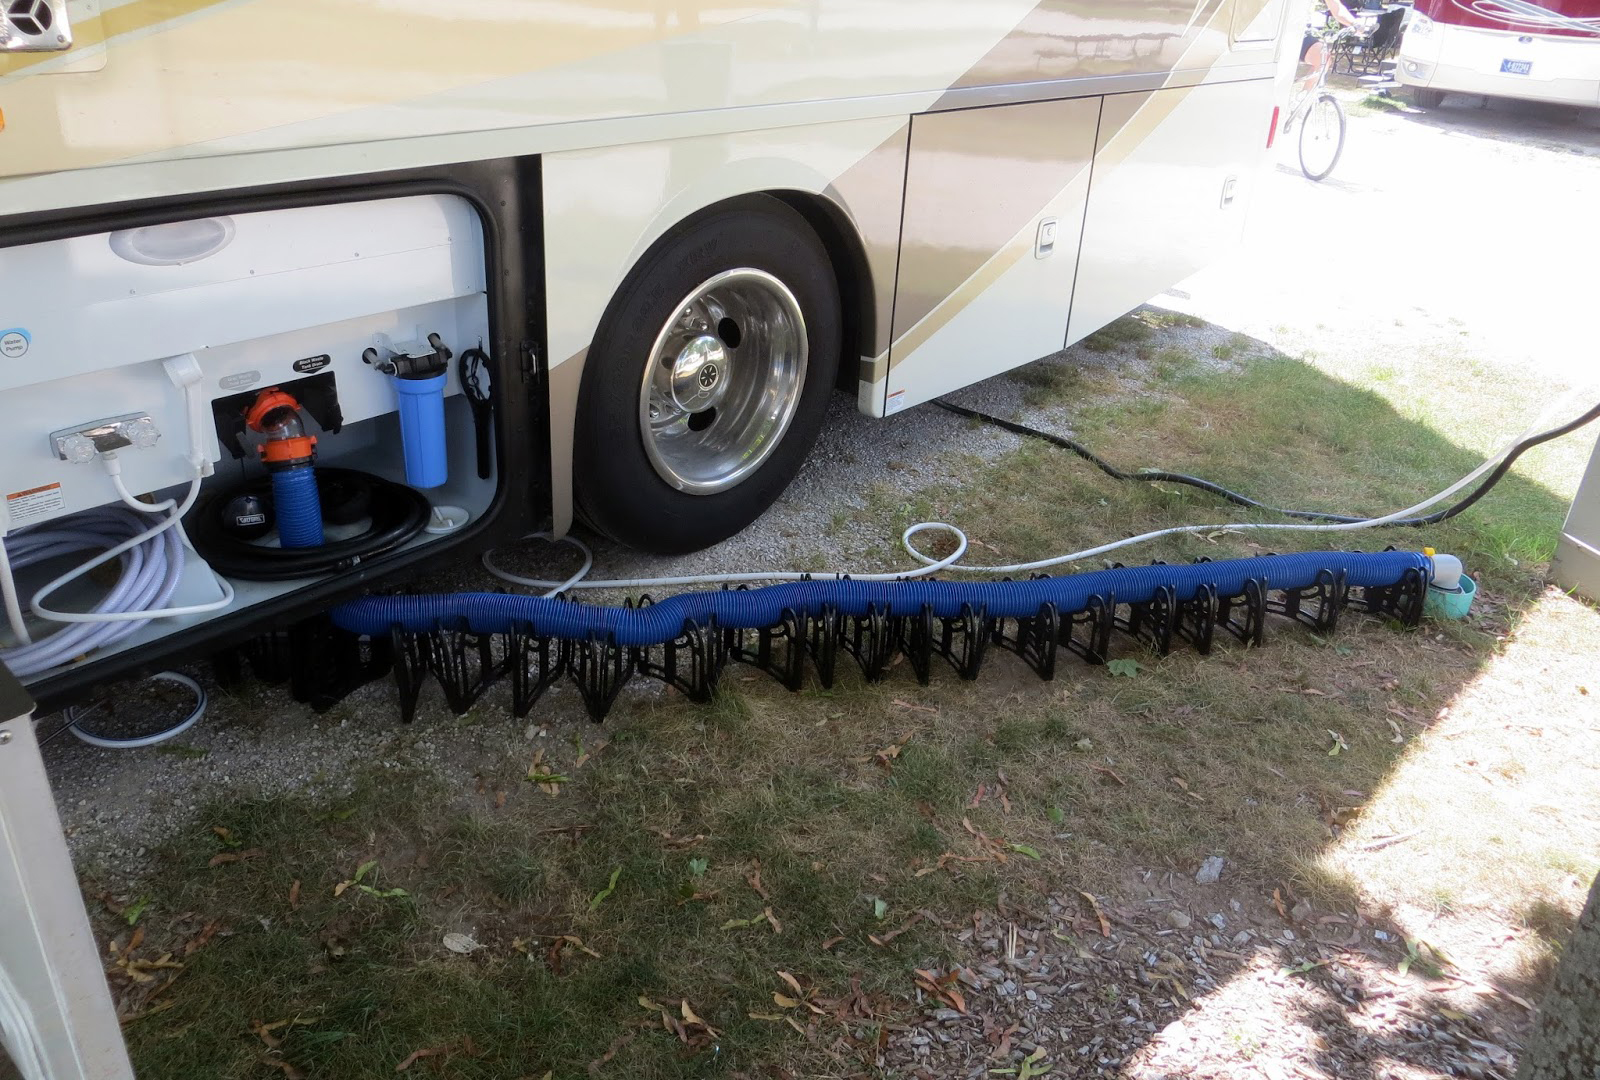 how to hook up RV sewer at home